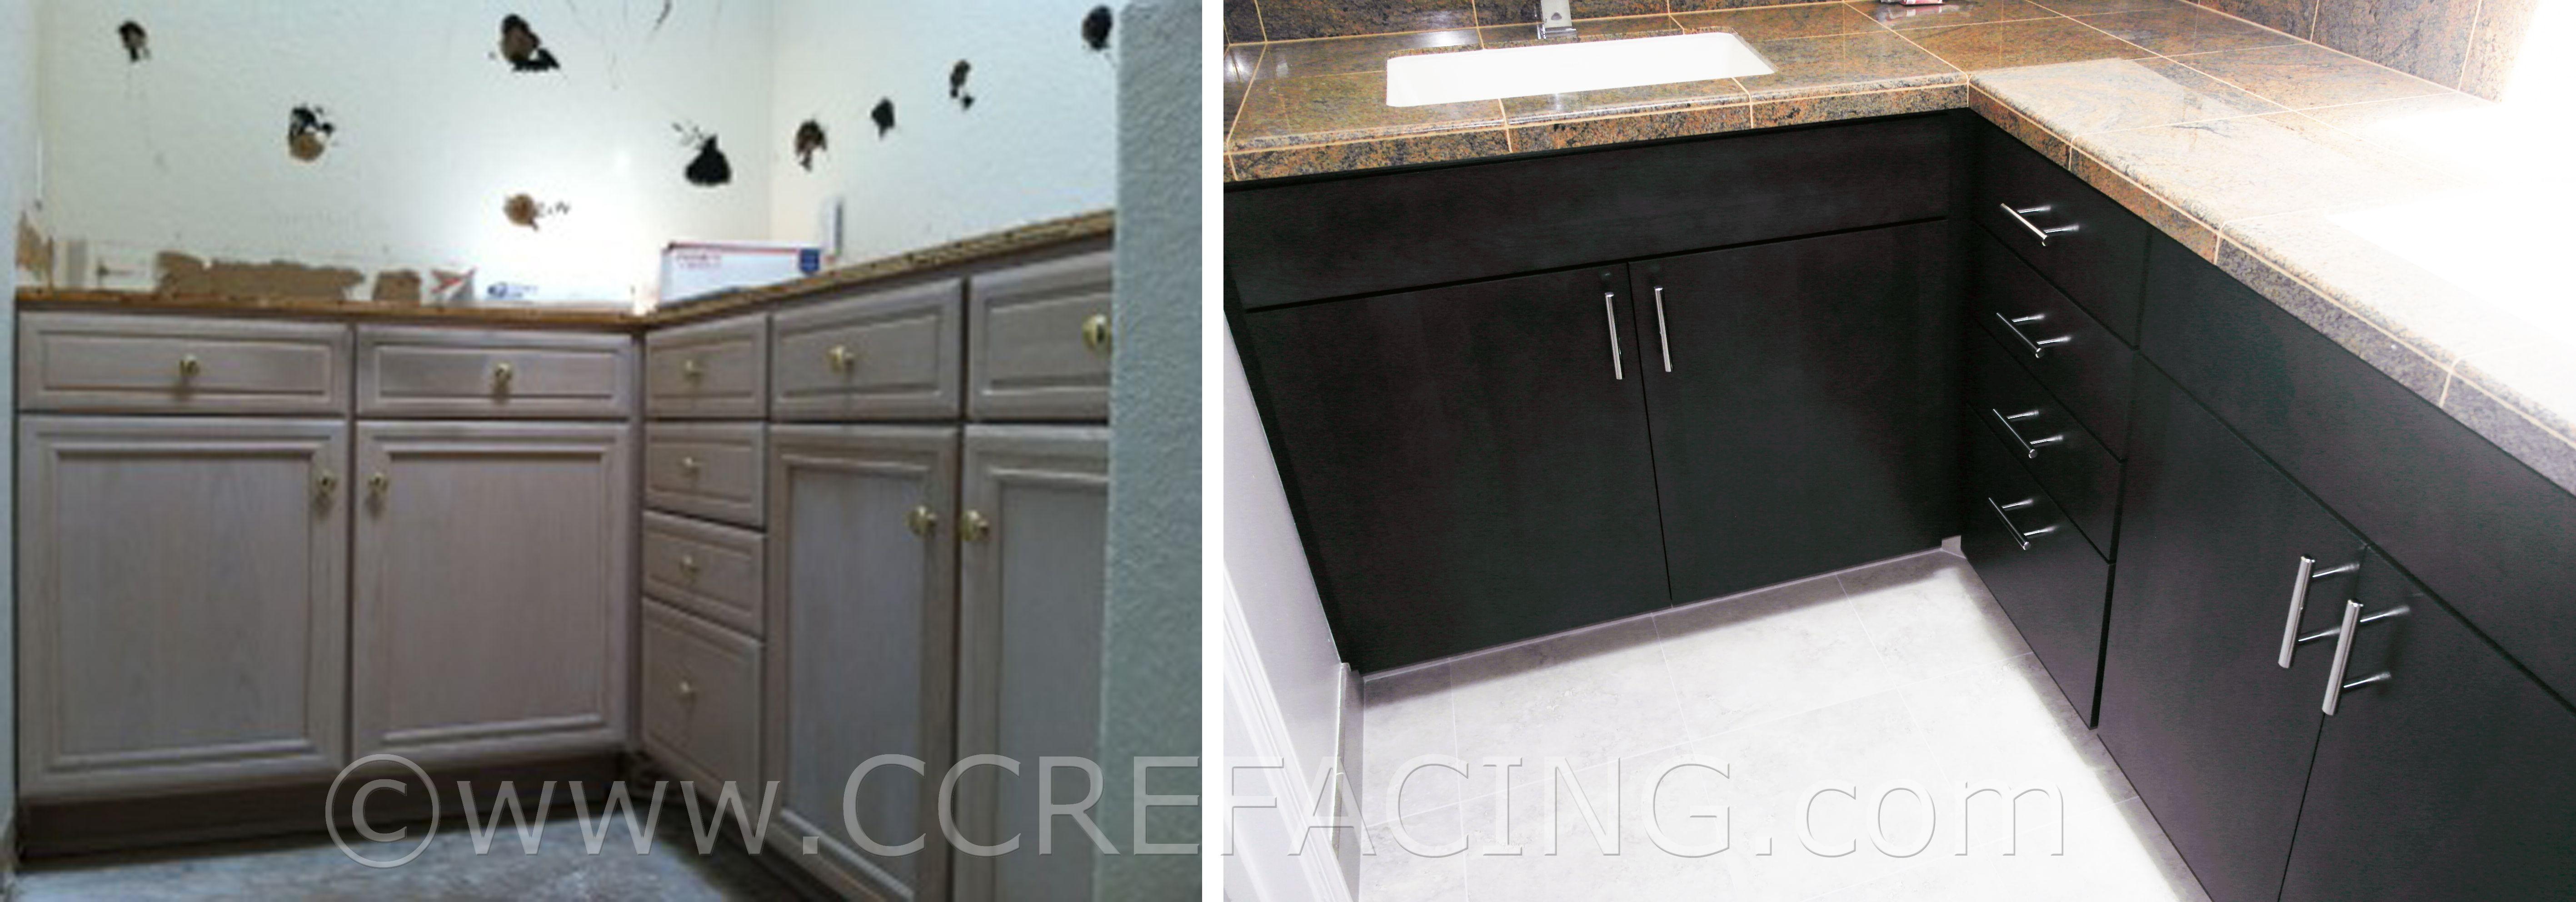 Portola Valley Cabinet Reface Refacing With Grey Maple Slab Cabinet